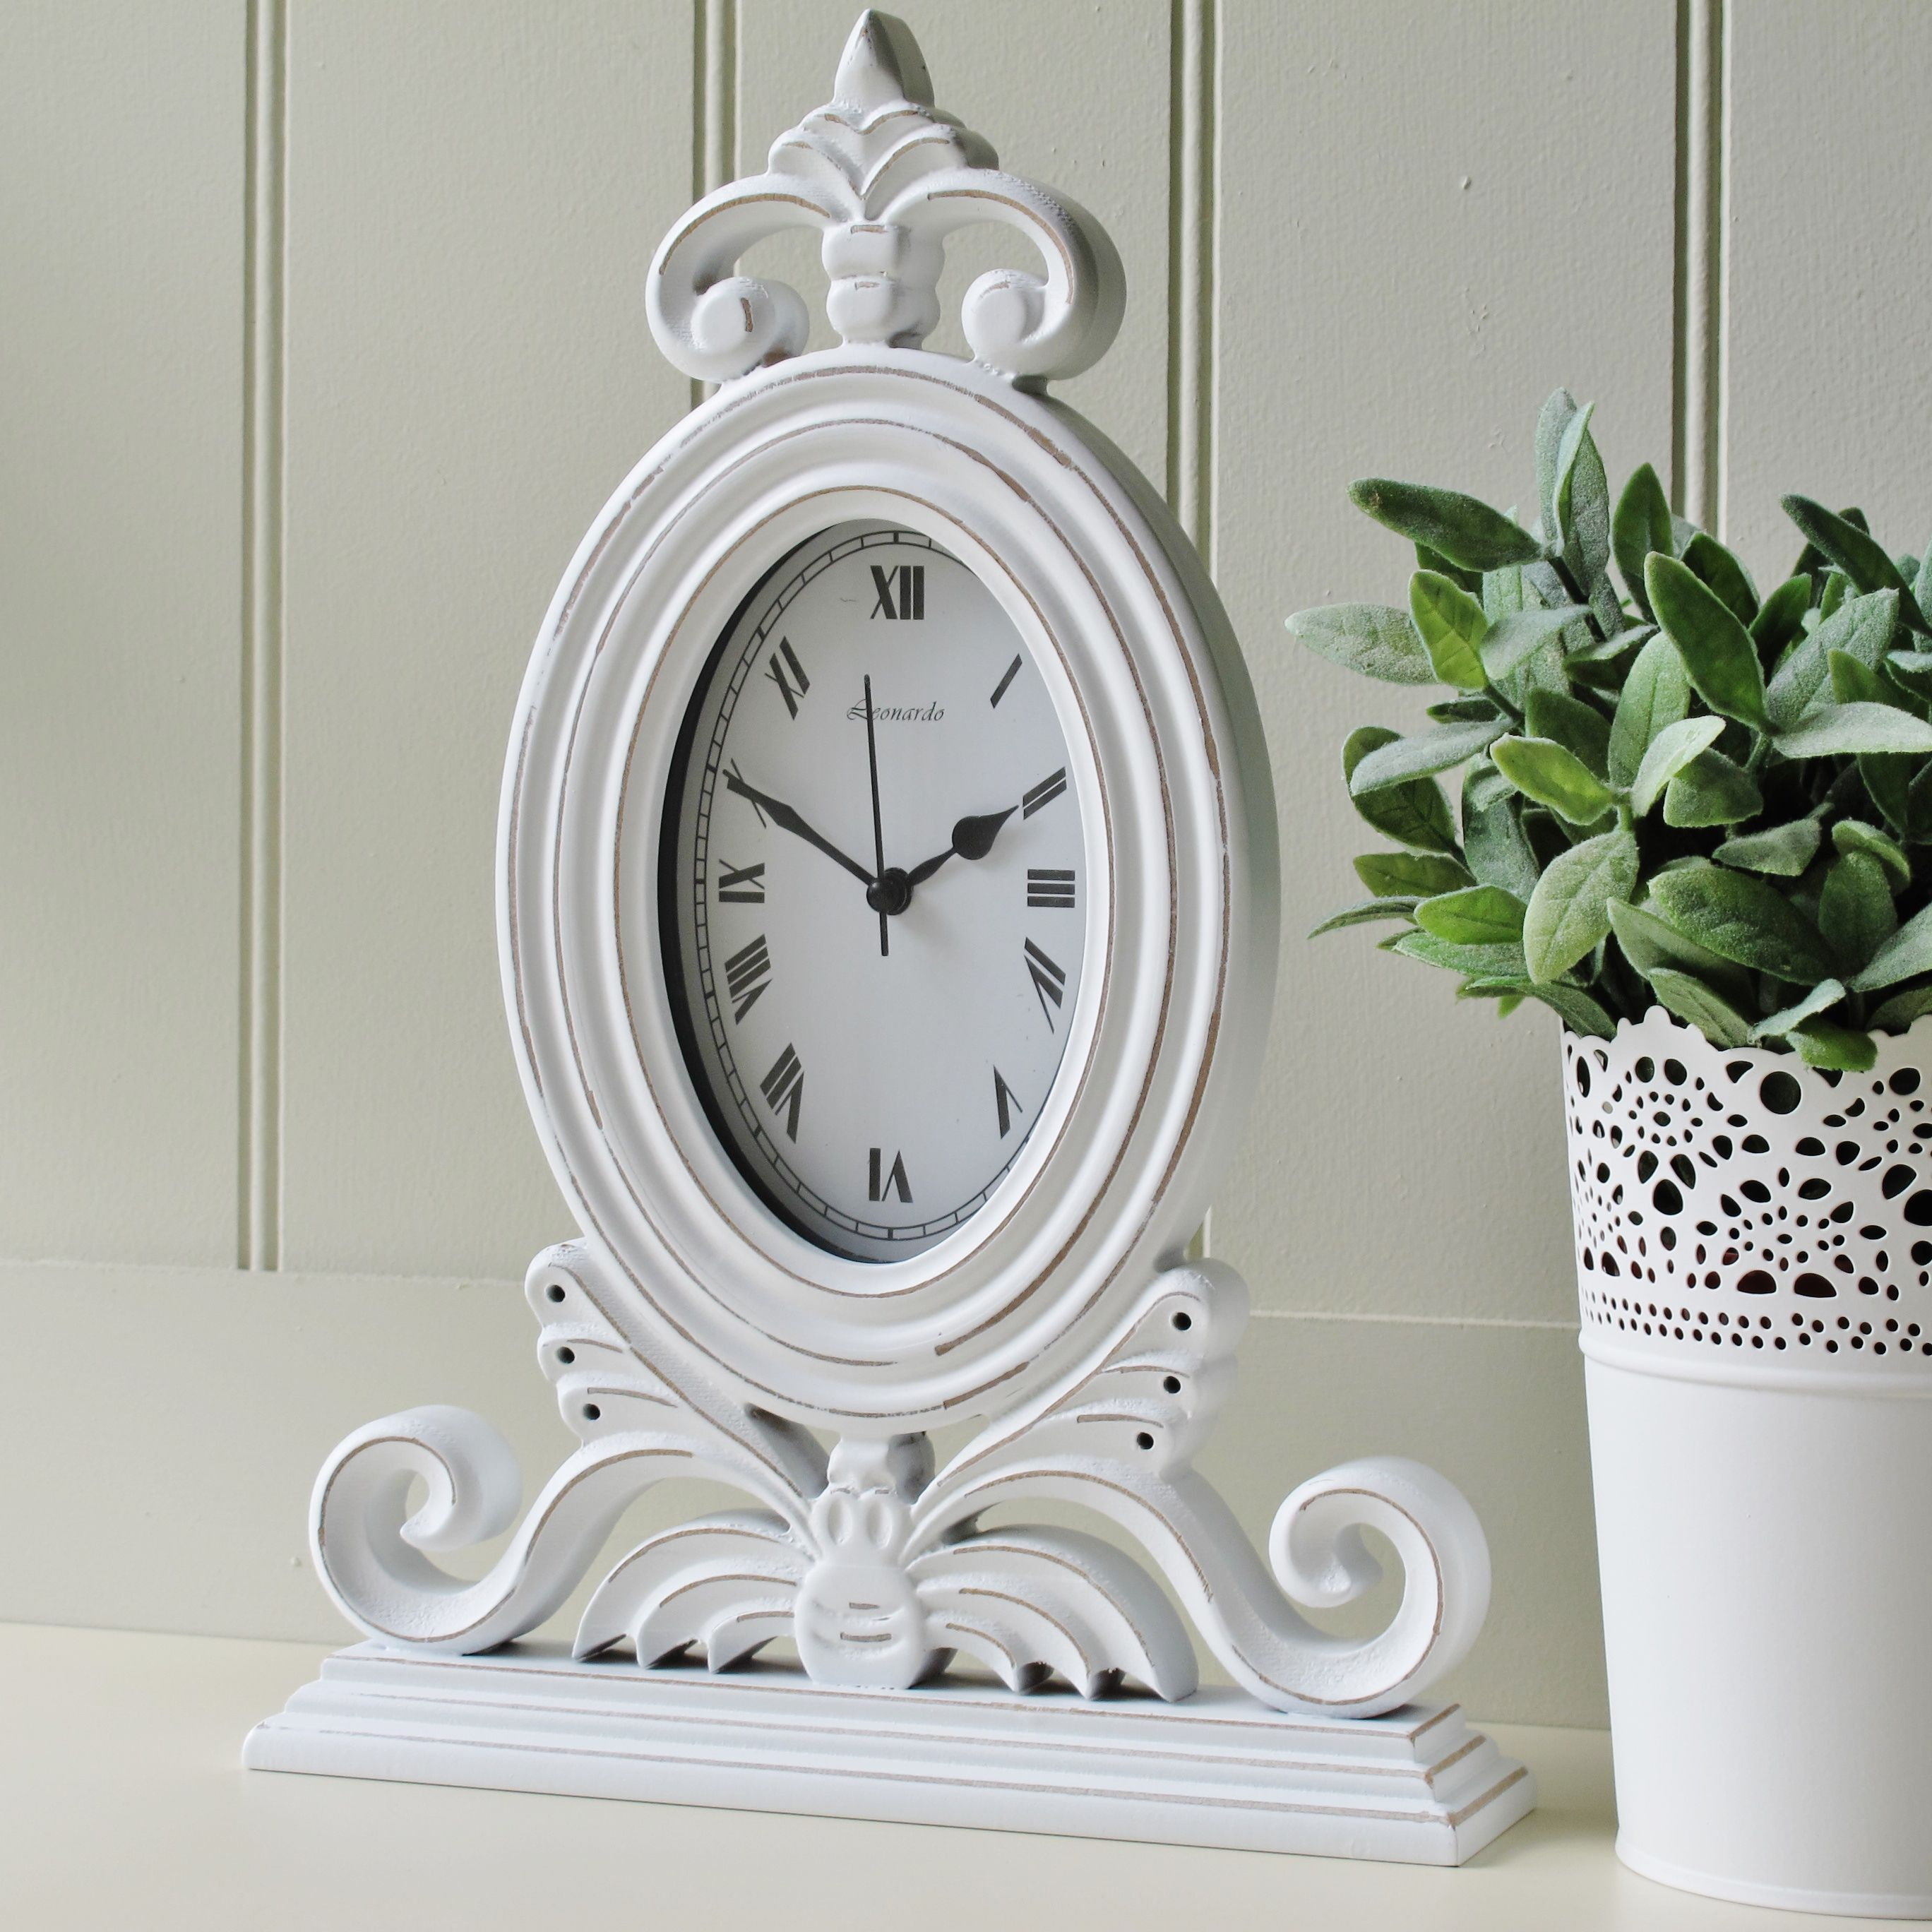 White mantel clock french style very shabby chic from white mantel clock french style very shabby chic from blissandbloom amipublicfo Gallery